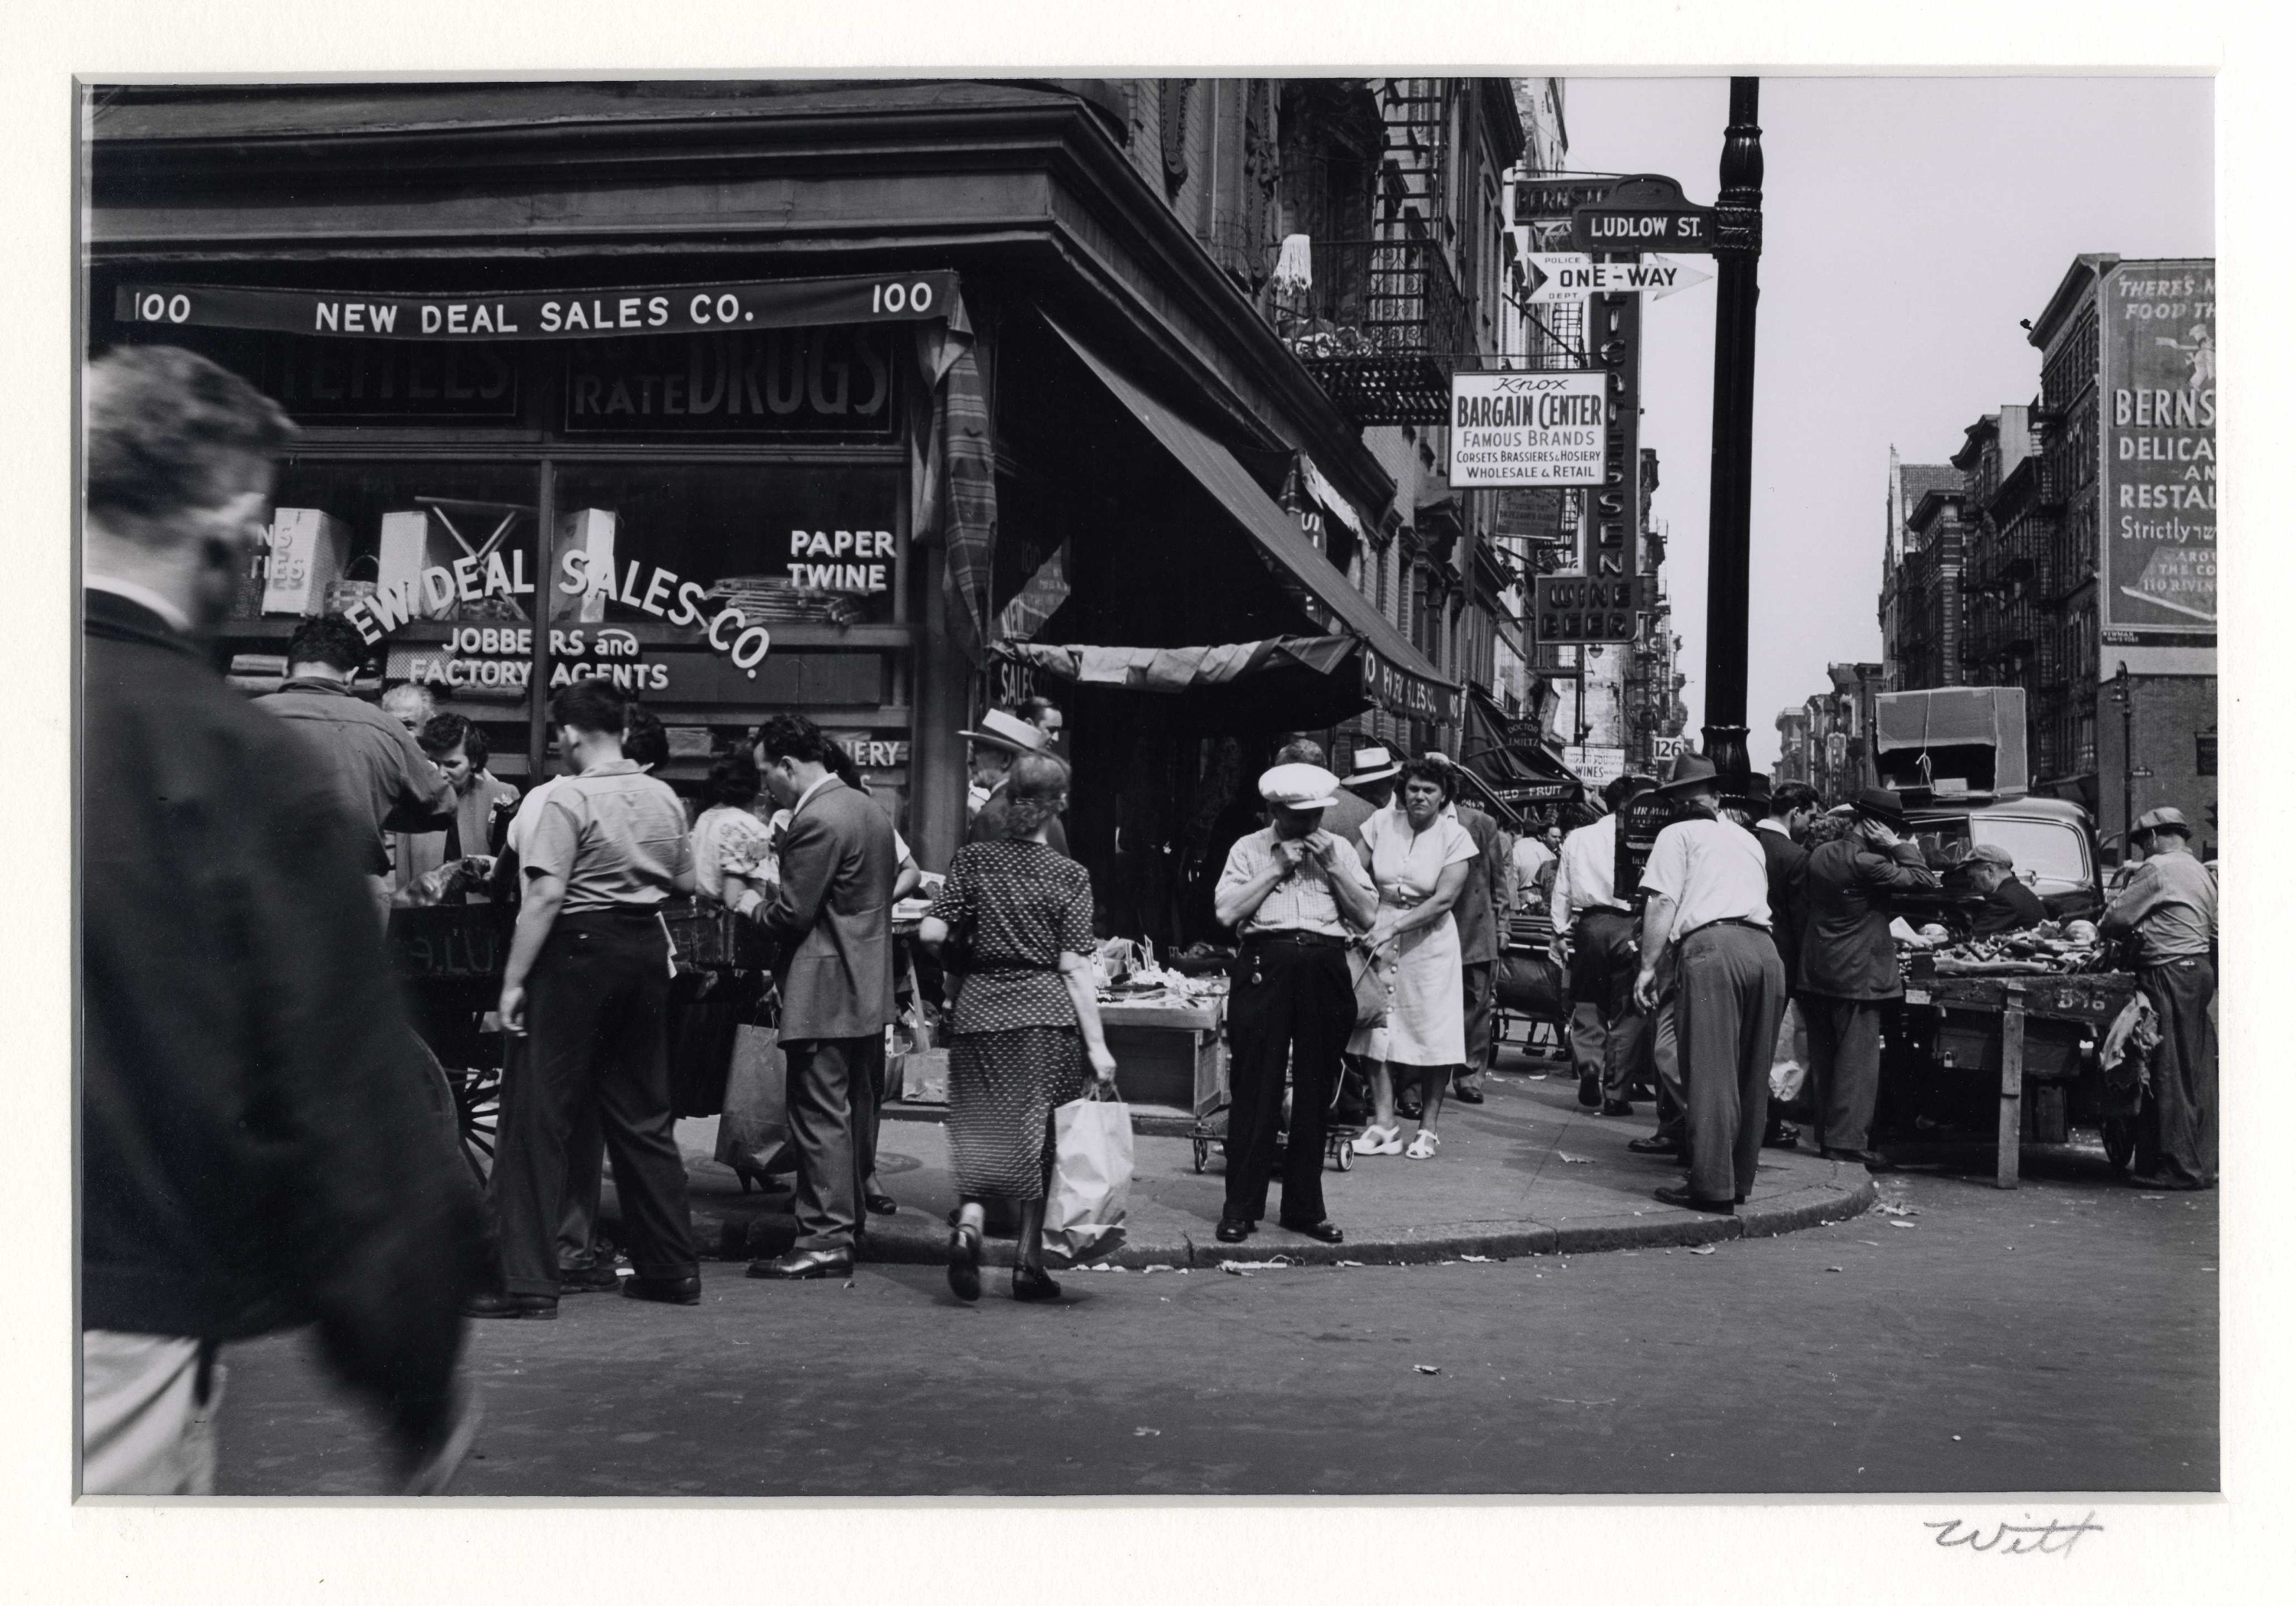 New Deal Sales, Ludlow Street, Lower East Side, New York City, 1947